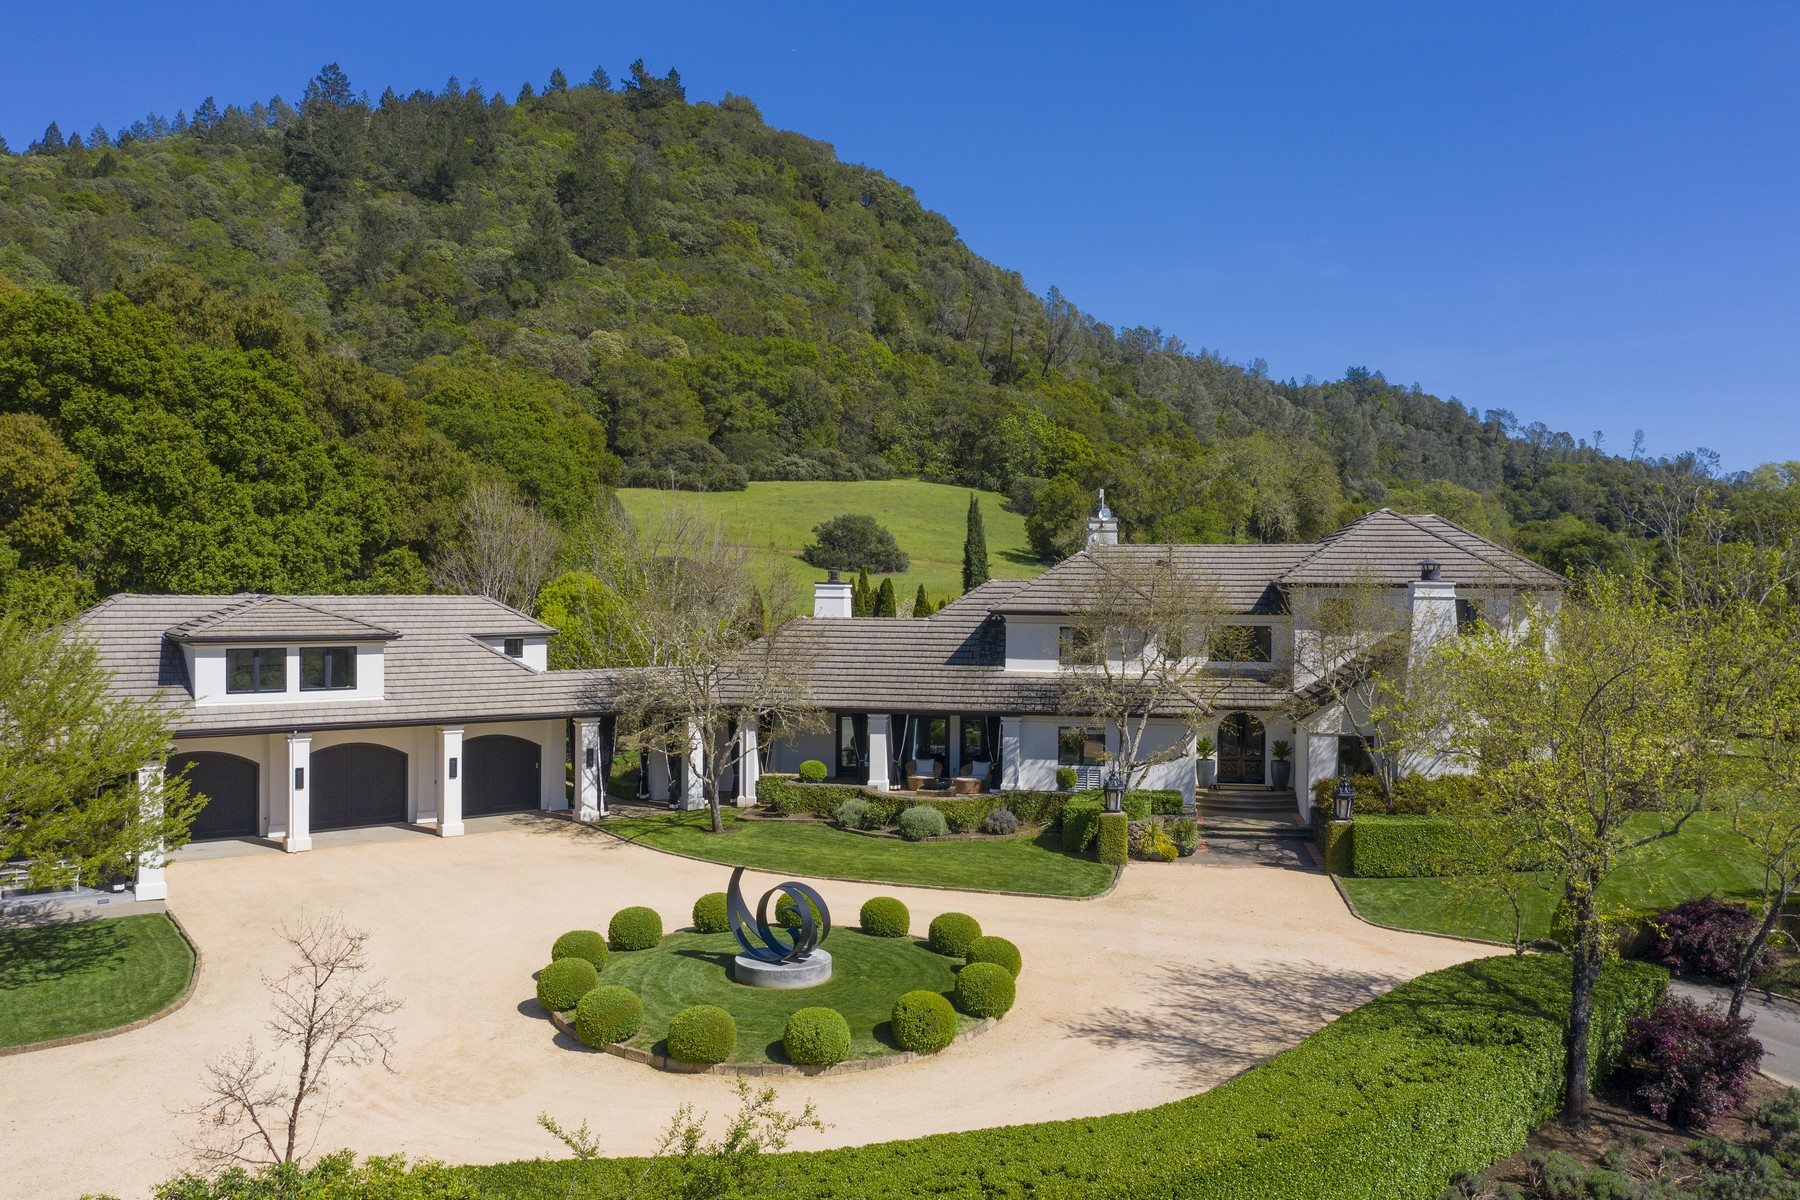 Vineyard Real Estate for Sale at Alexander Valley Vineyard Estate 4395 Pine Flat Road Healdsburg, California 95448 United States